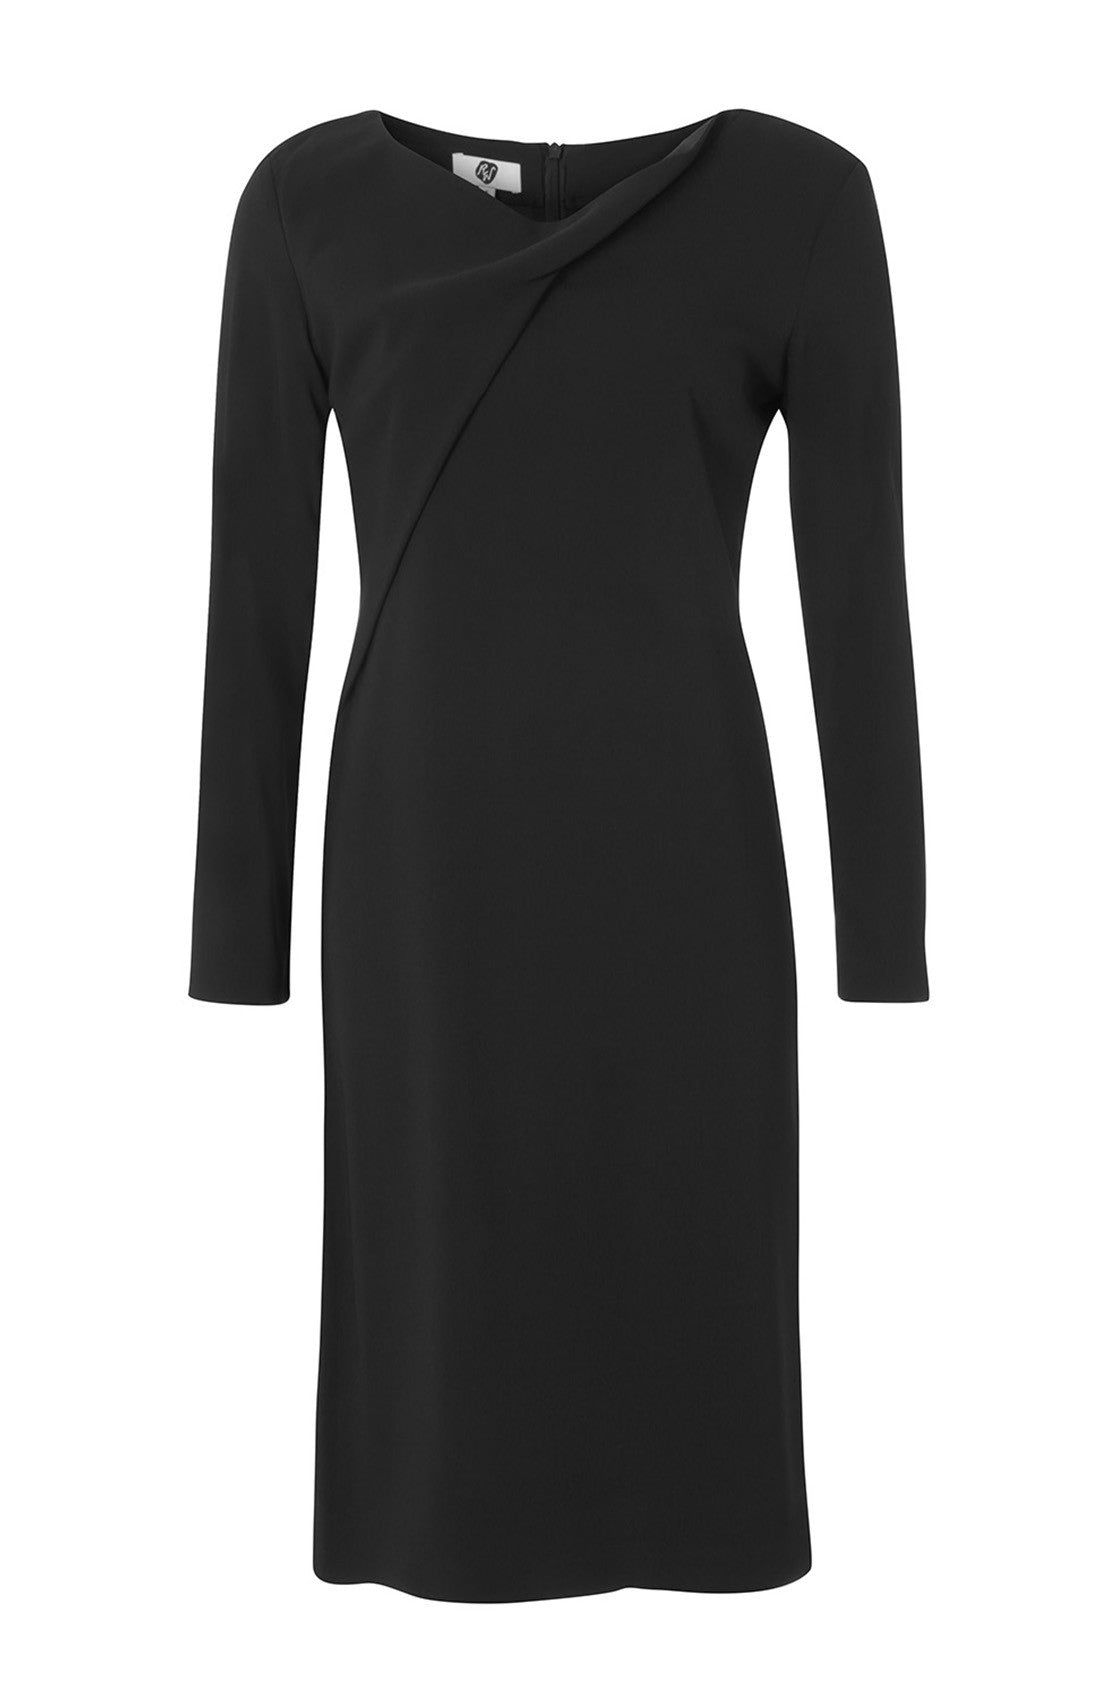 Long sleeve knee length office shift dress for work with twist neckline black